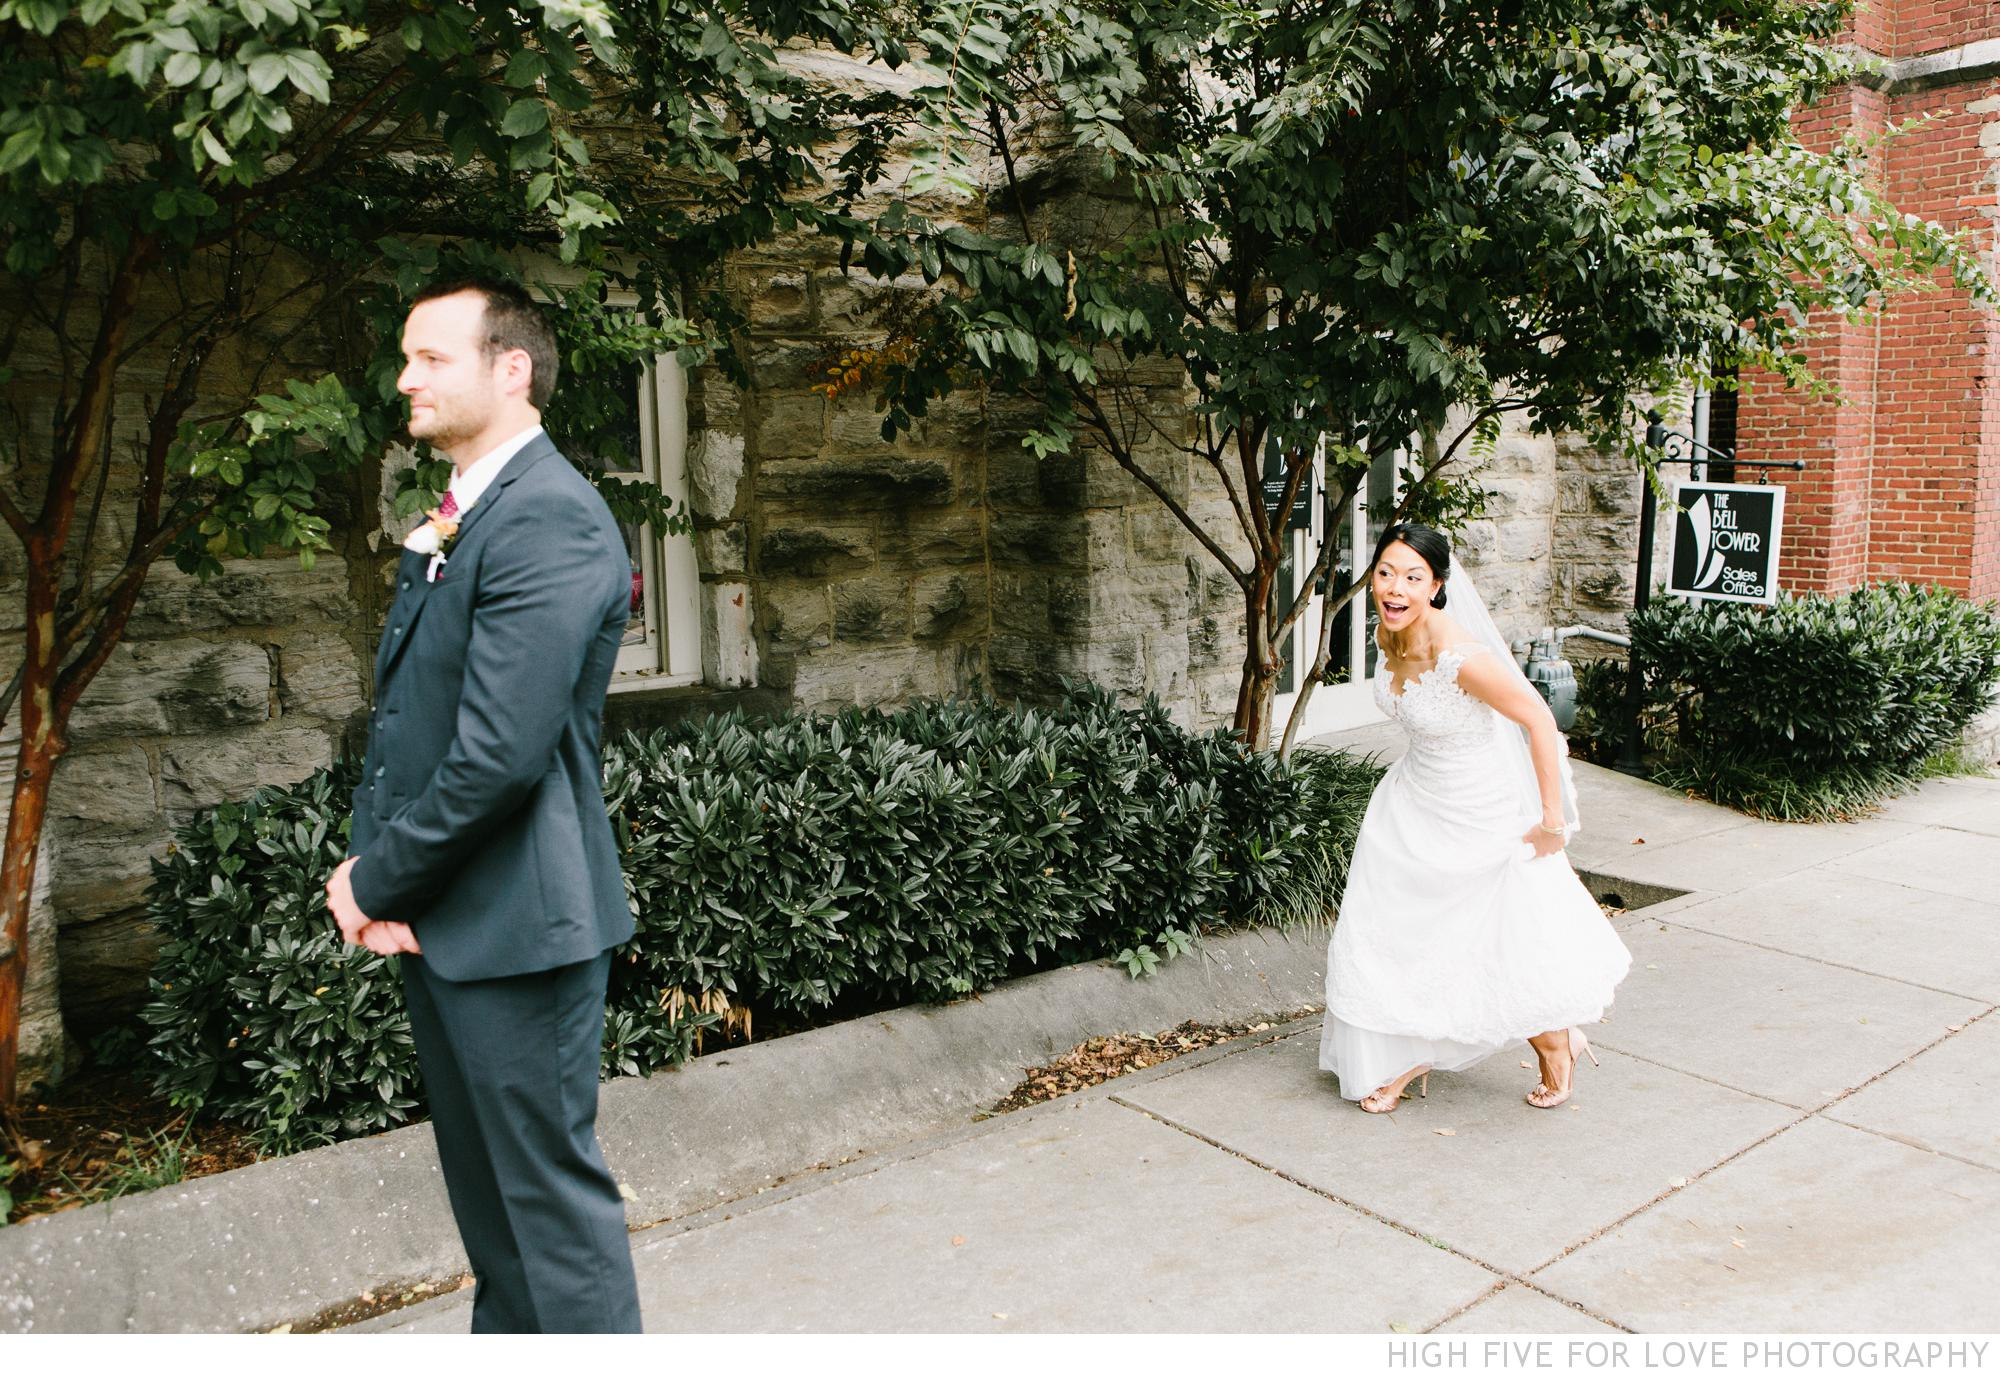 Amy and Brandon's first look